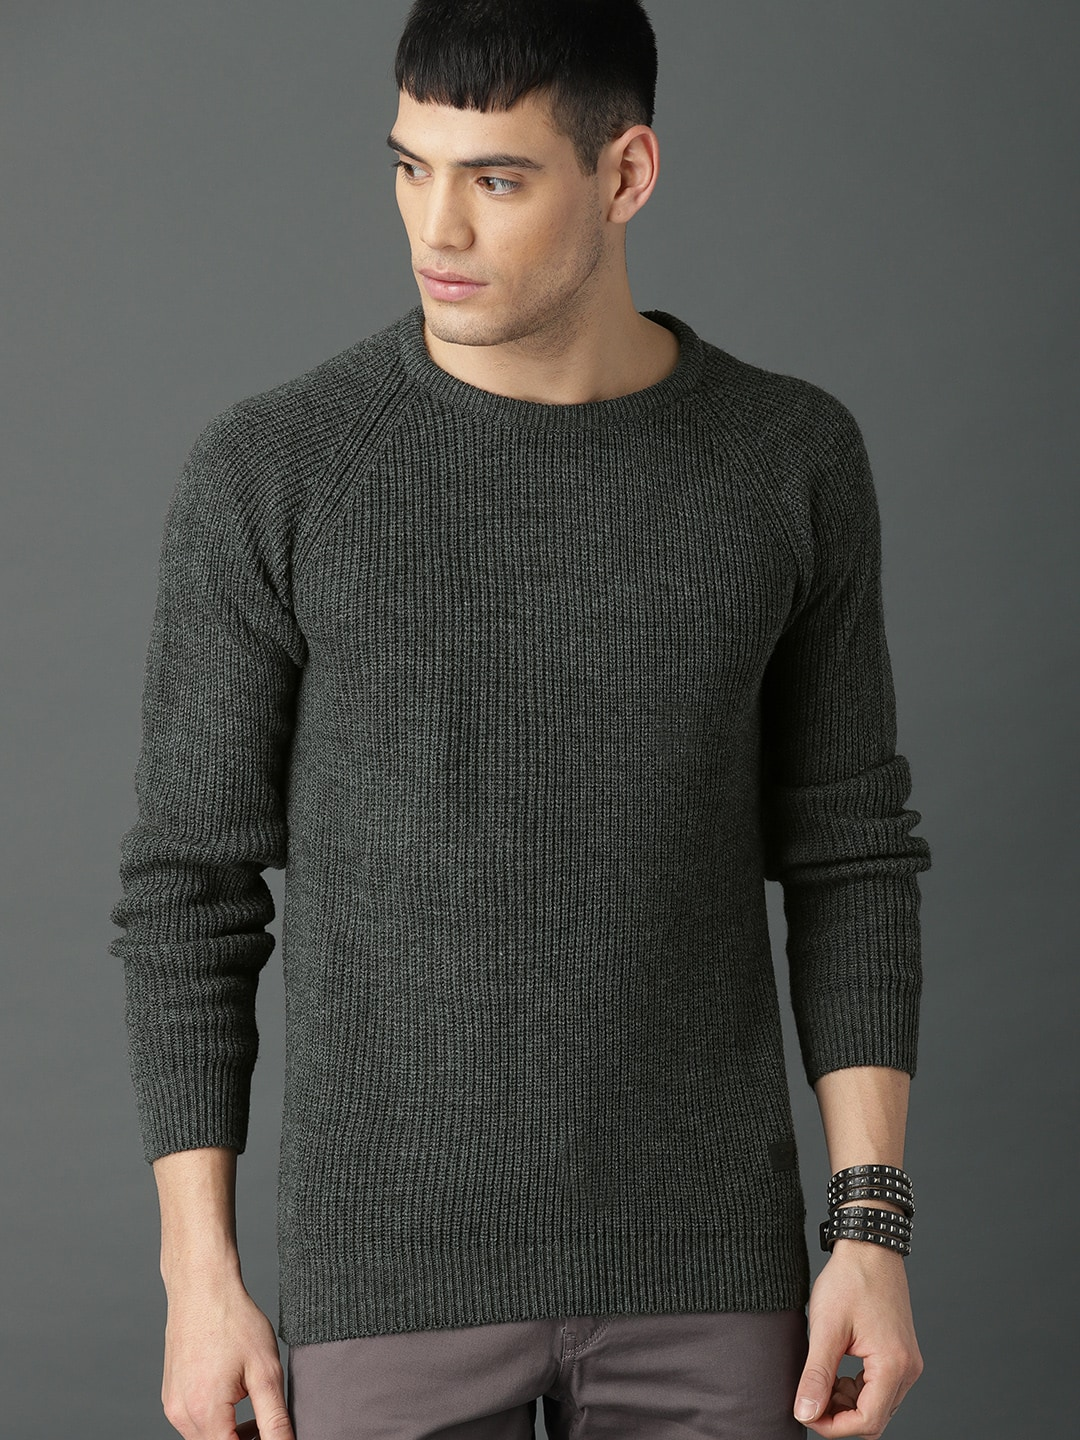 056c7c35b7e9 Sweaters for Men - Buy Mens Sweaters